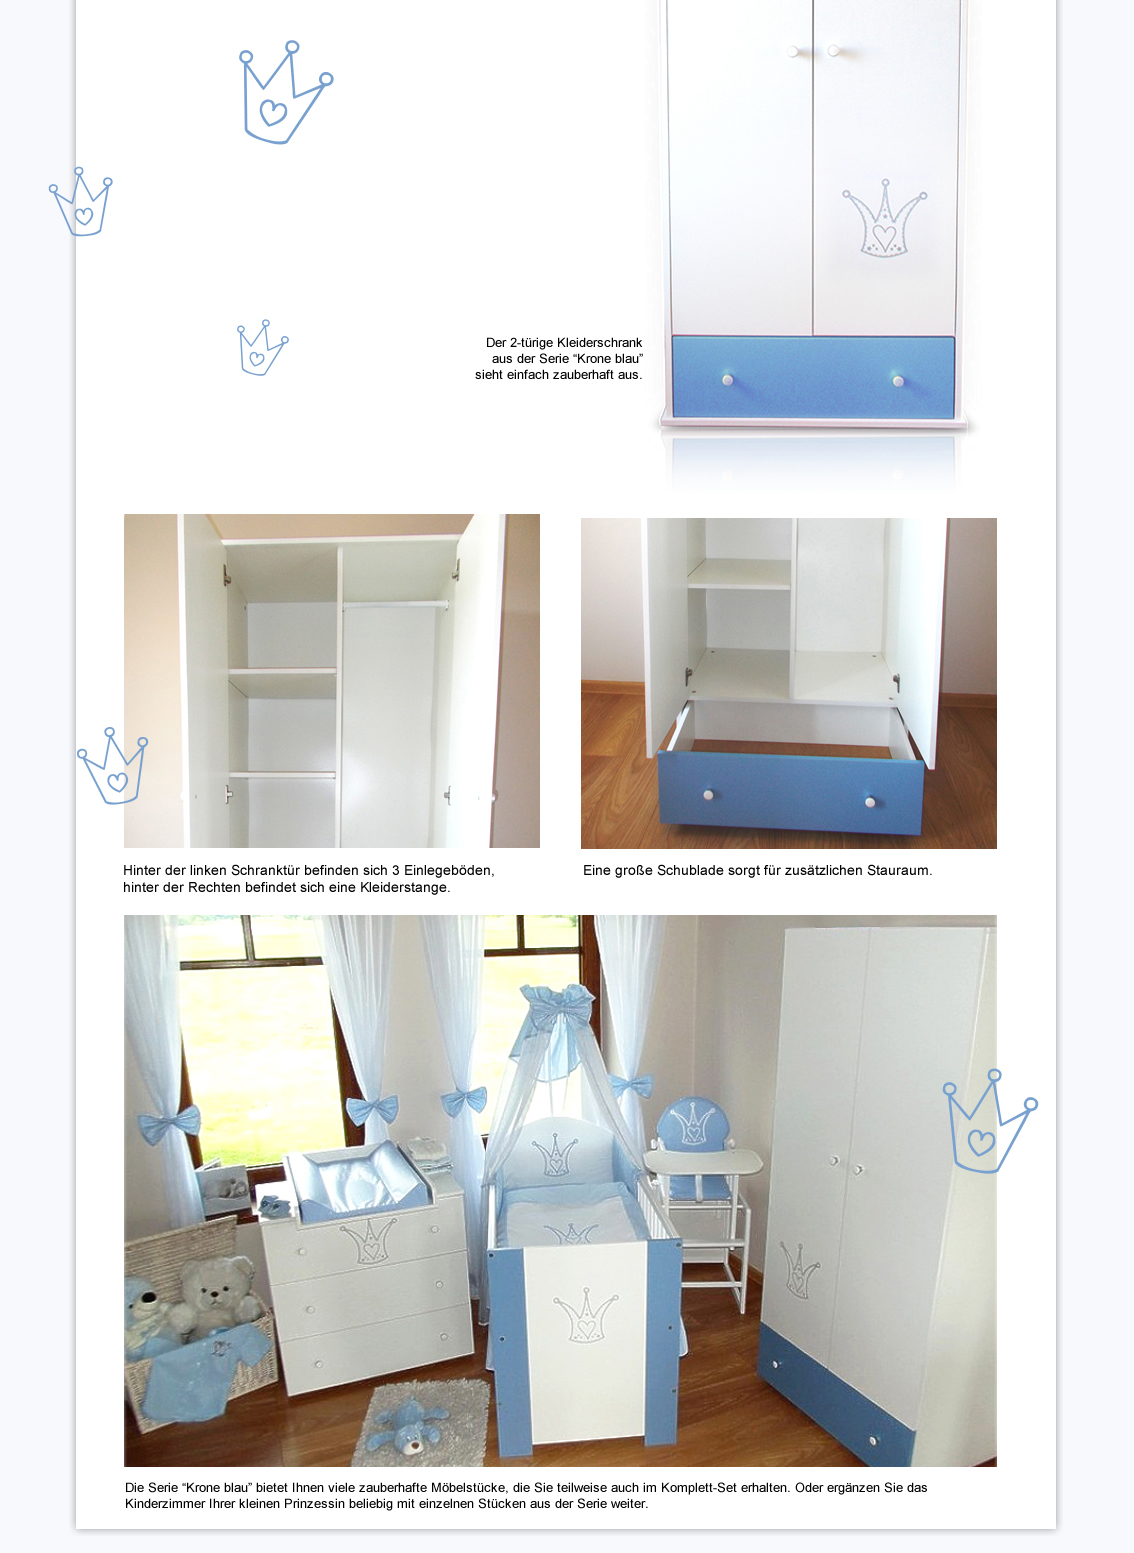 krone blau schrank f r babyzimmer schrank krone blau kleiderschrank ebay. Black Bedroom Furniture Sets. Home Design Ideas